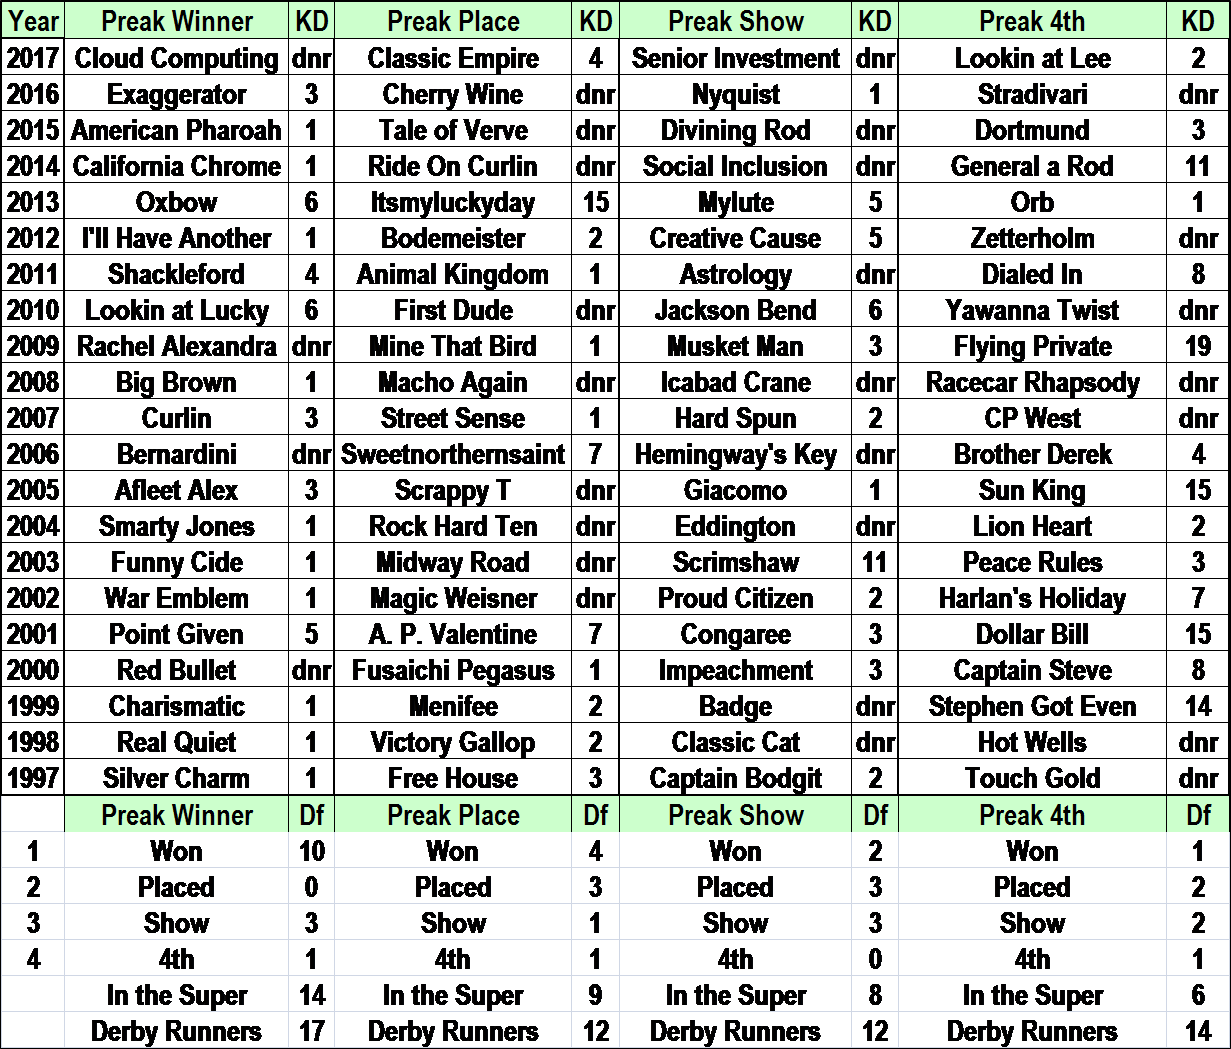 2017 Preakness top 4 and how they had fared in the Kentucky Derby